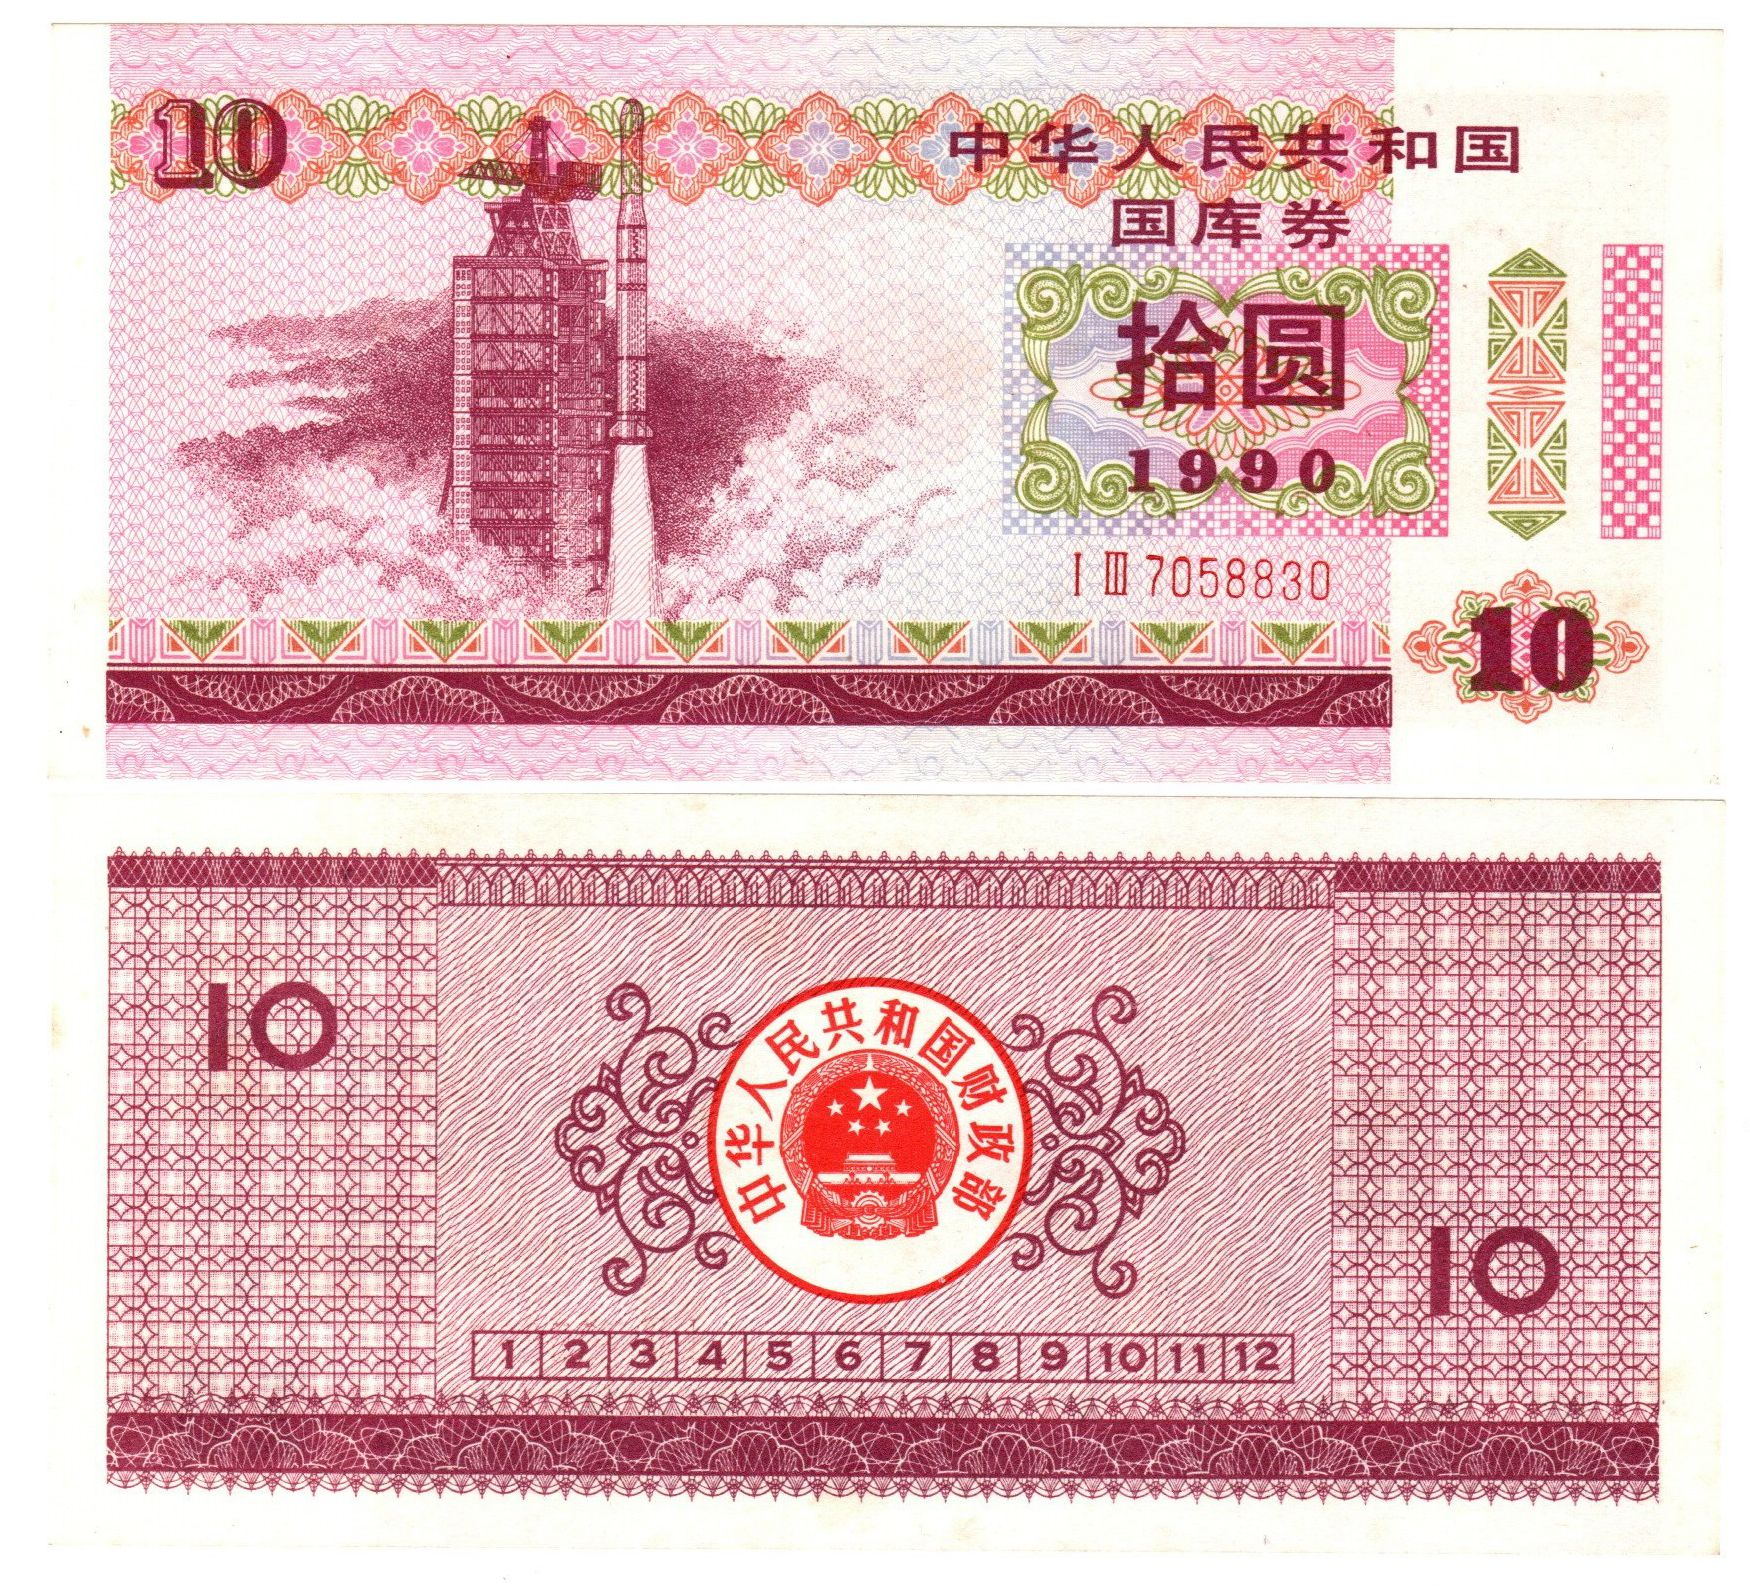 B7083, Treasury Bond of P.R.China, Ten Yuan (10 Dollars Loan) 1990